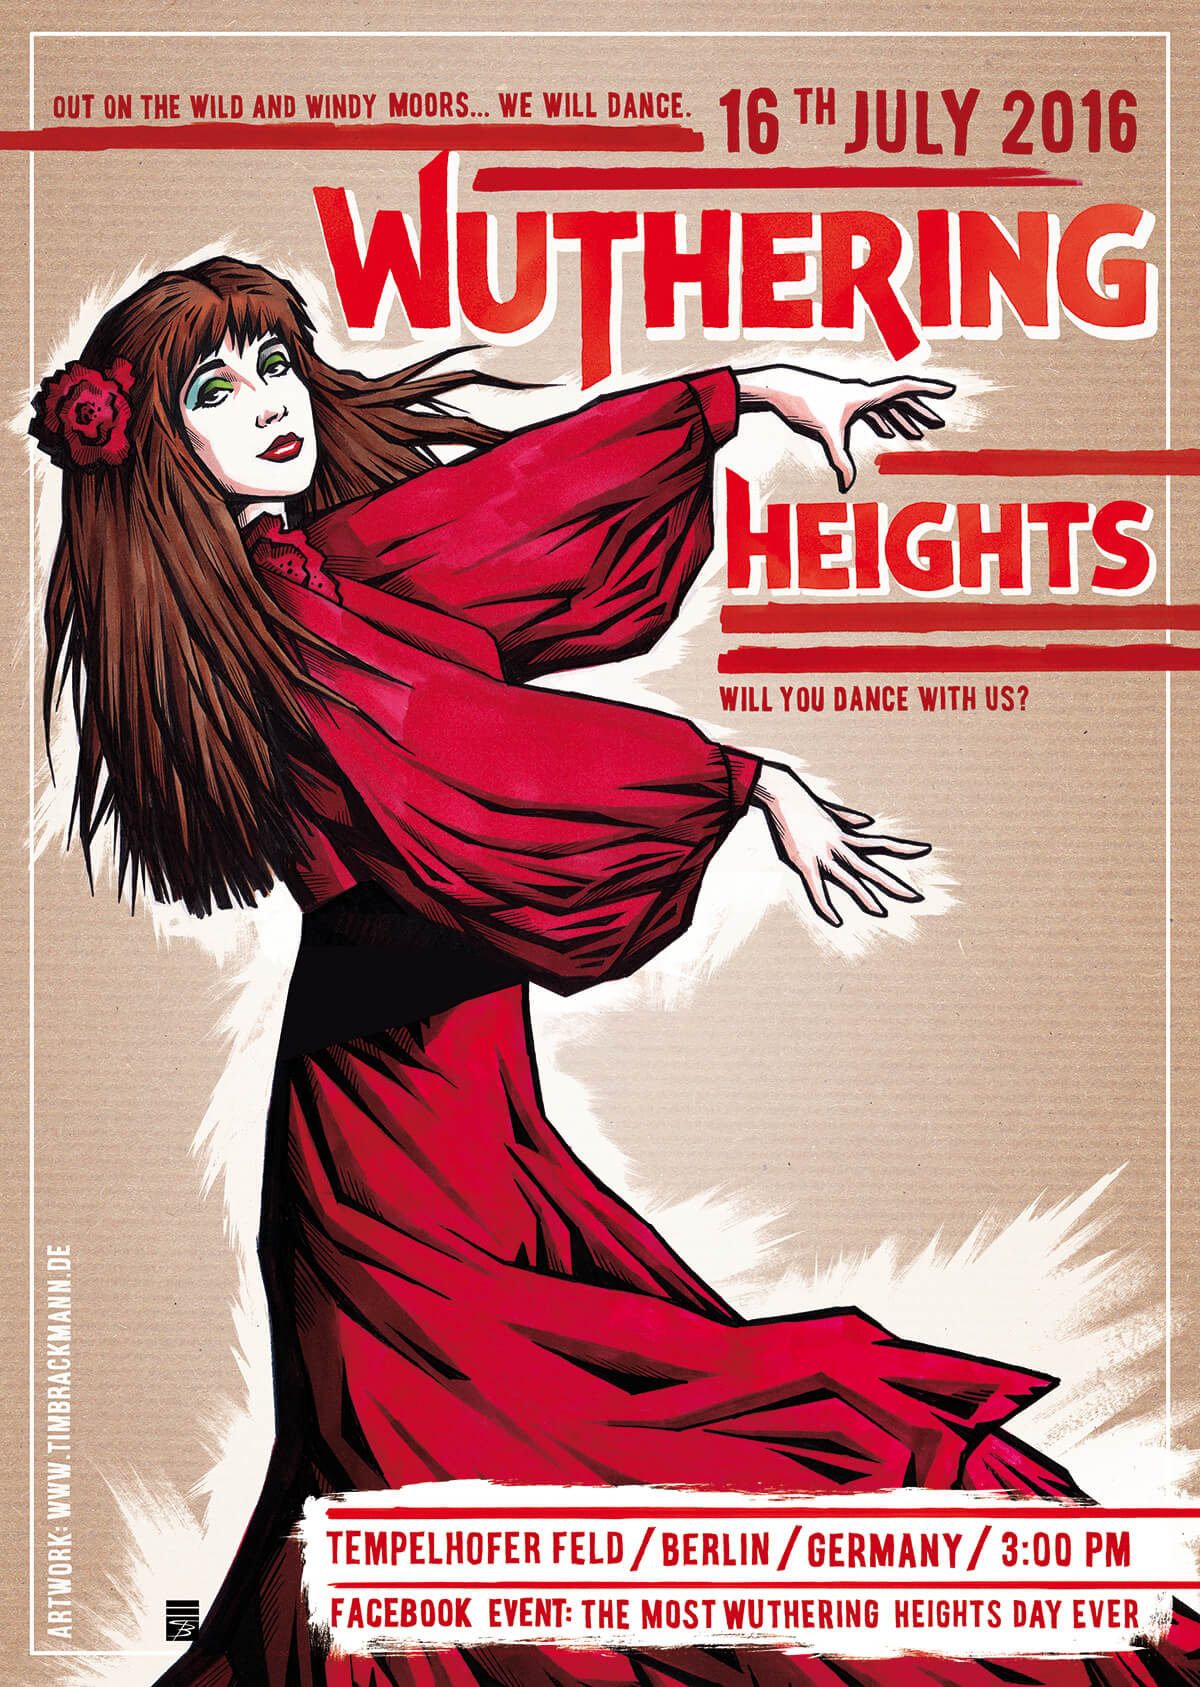 WutheringHeights_Webt